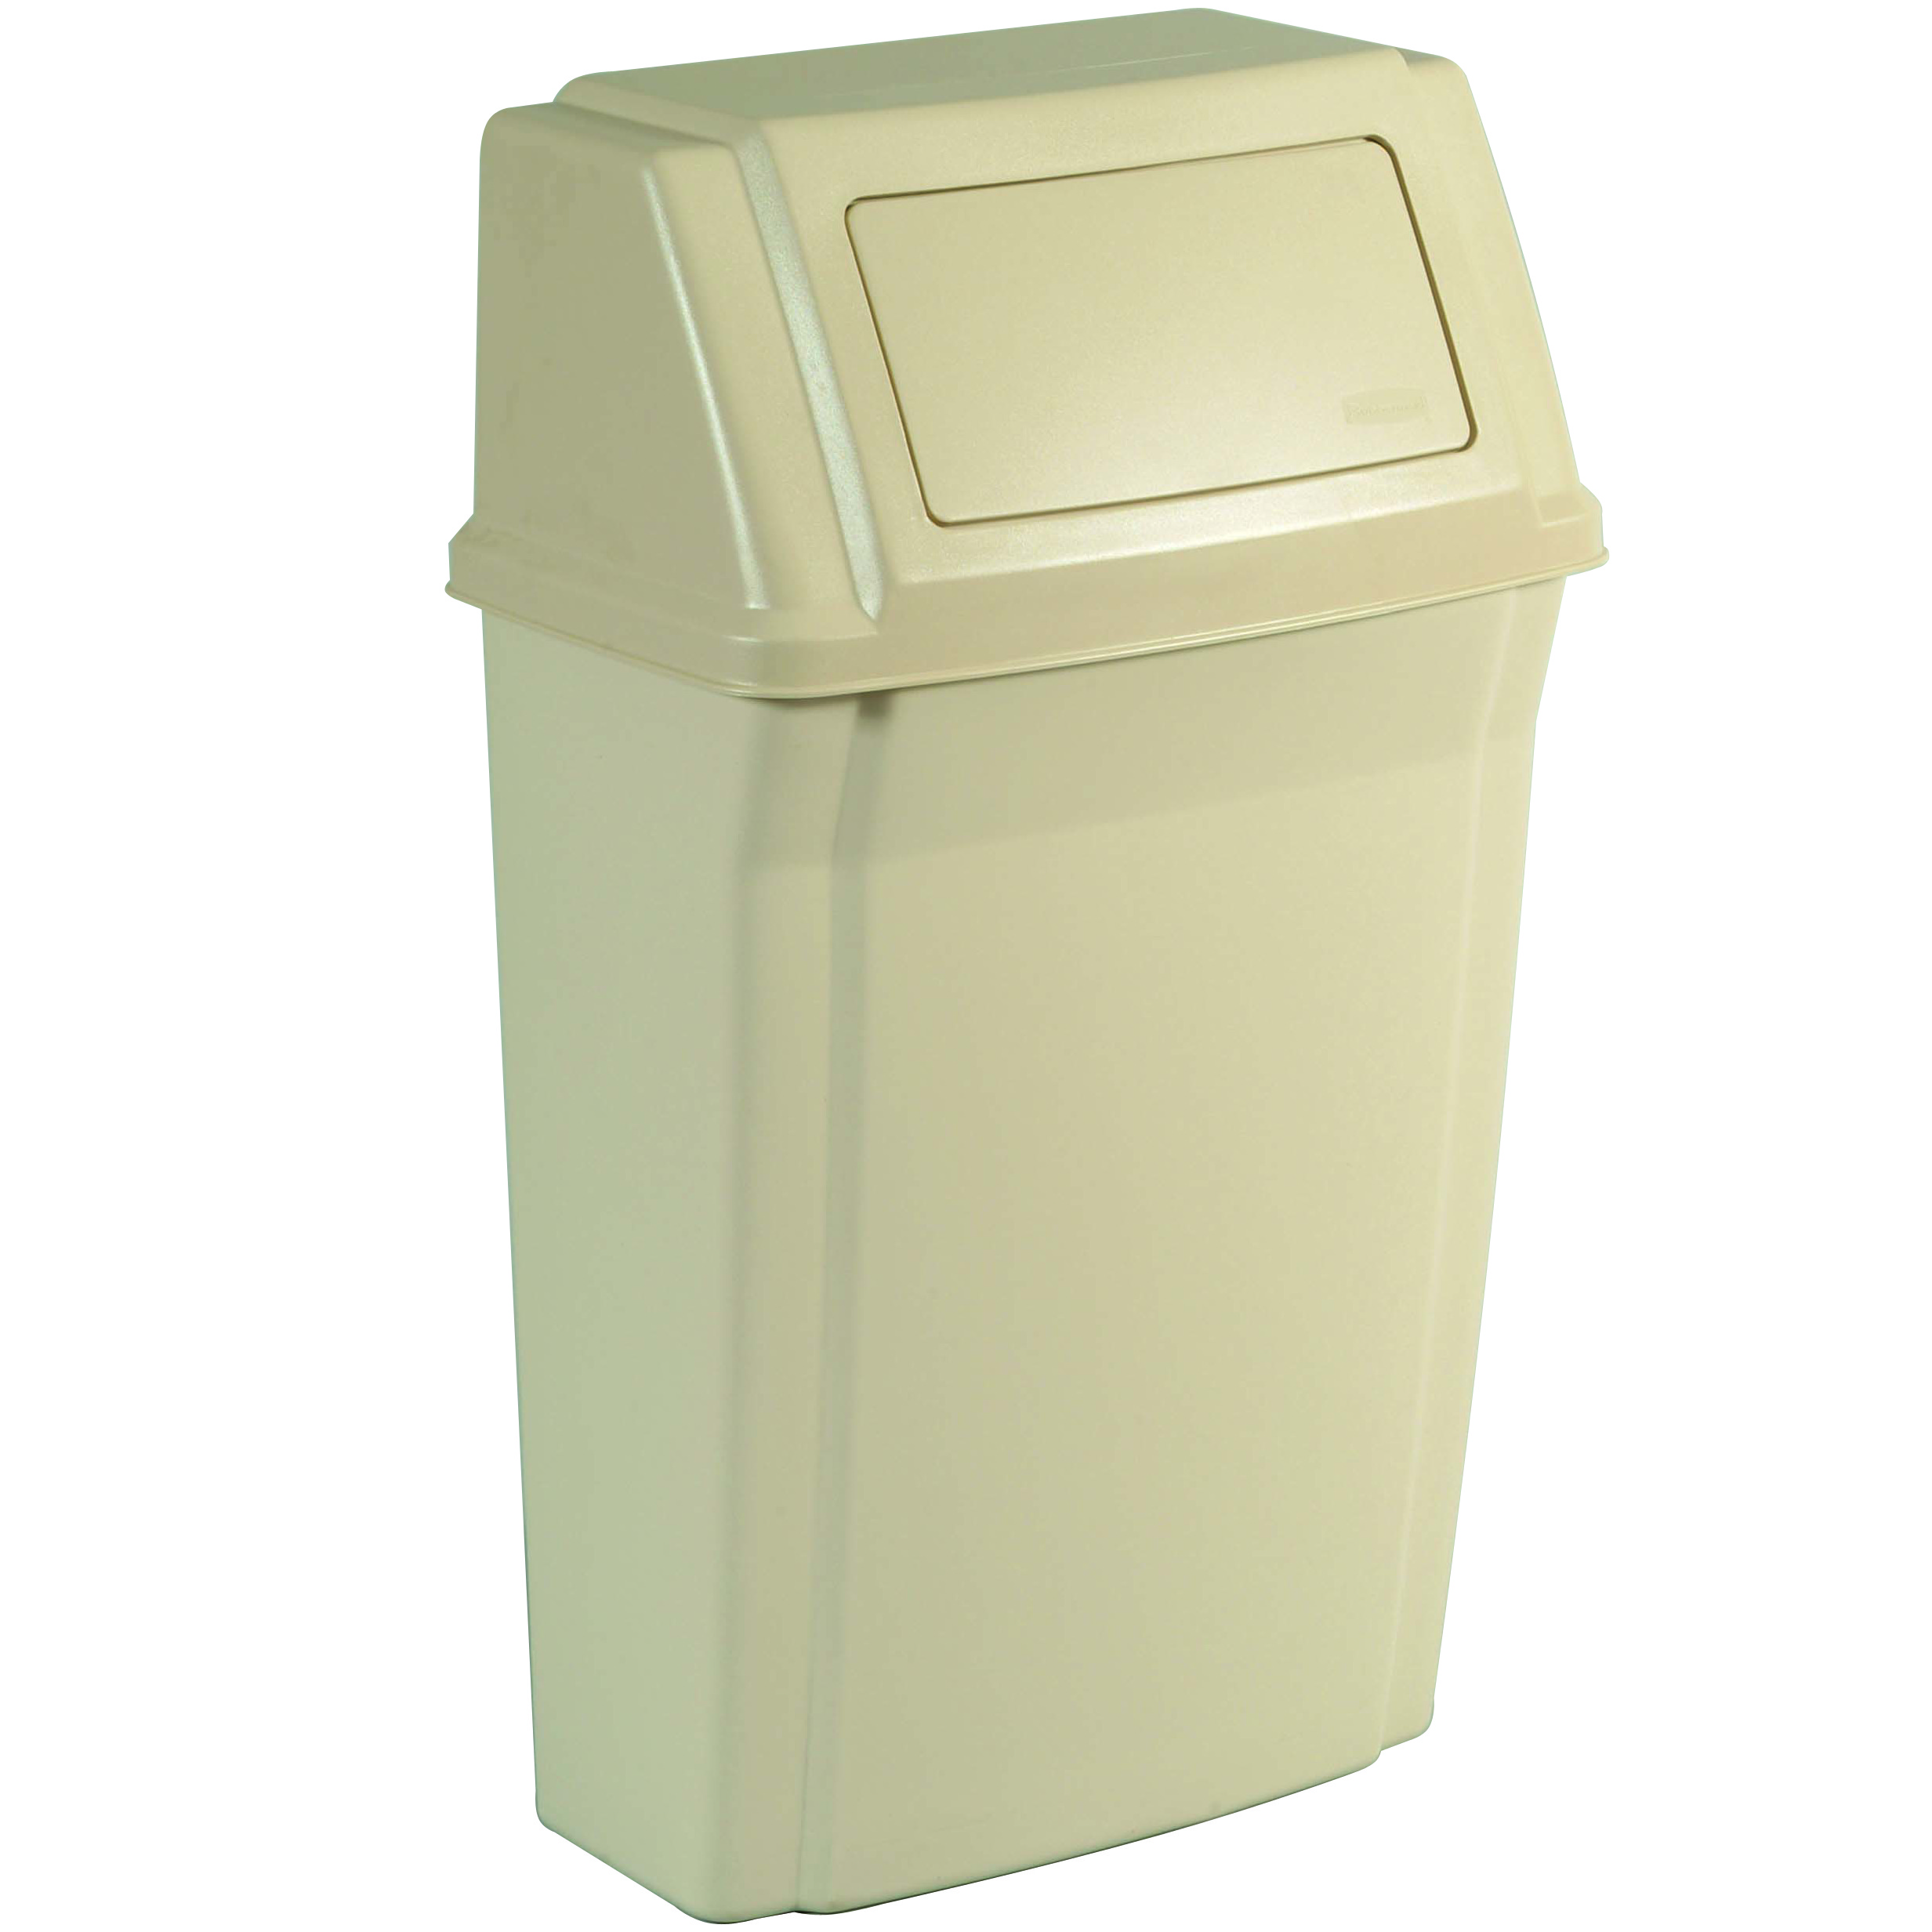 Attractive Trash Cans 15 Gallon Rubbermaid Slim Jim Wall Mounted Trash